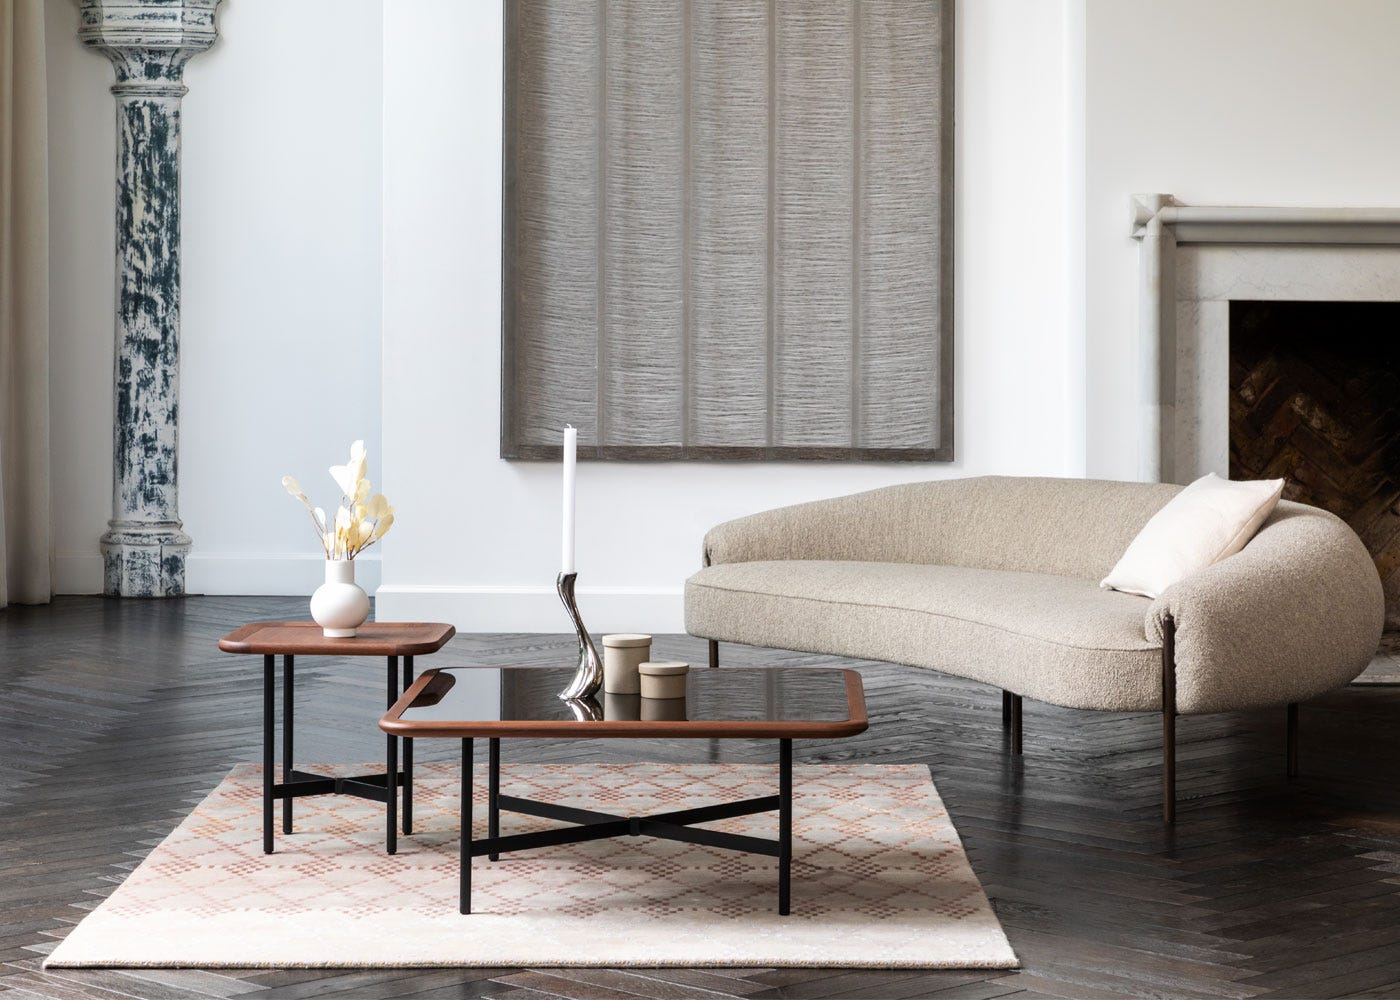 As shown: Emerson square side & coffee table, Isola sofa.